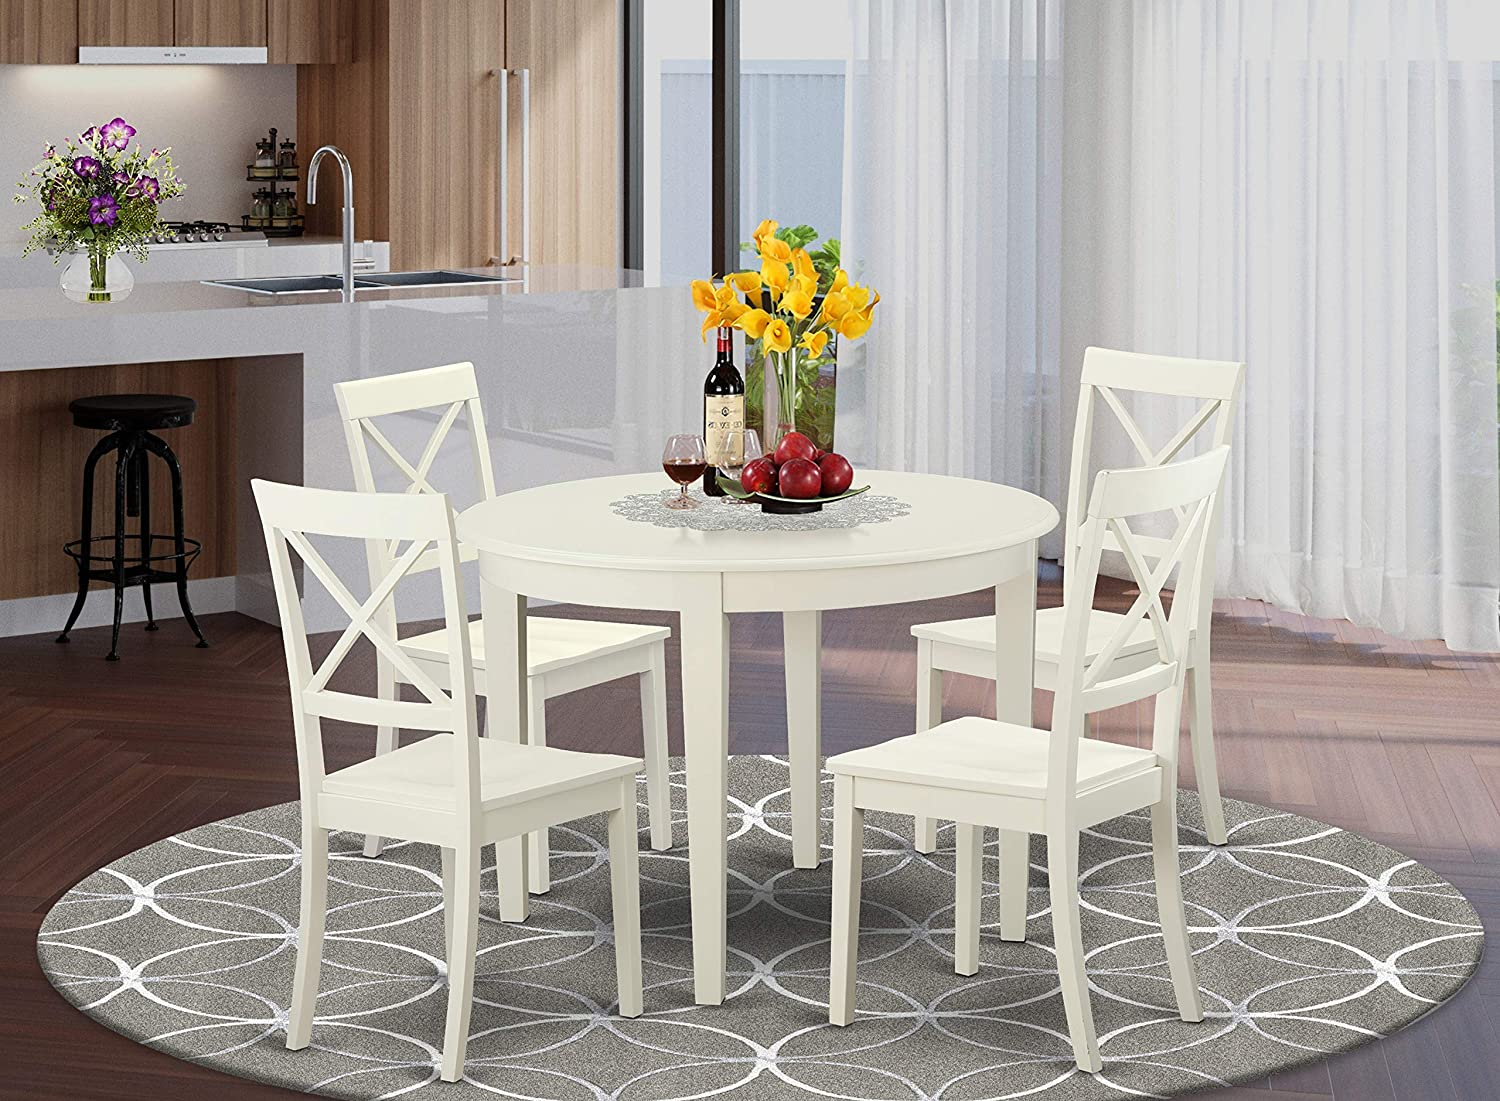 East West Furniture Dinette Set 5 Pc - Linen White Color Wooden Kitchen Chairs Seat - Linen White Finish Dining Room Table and Frame